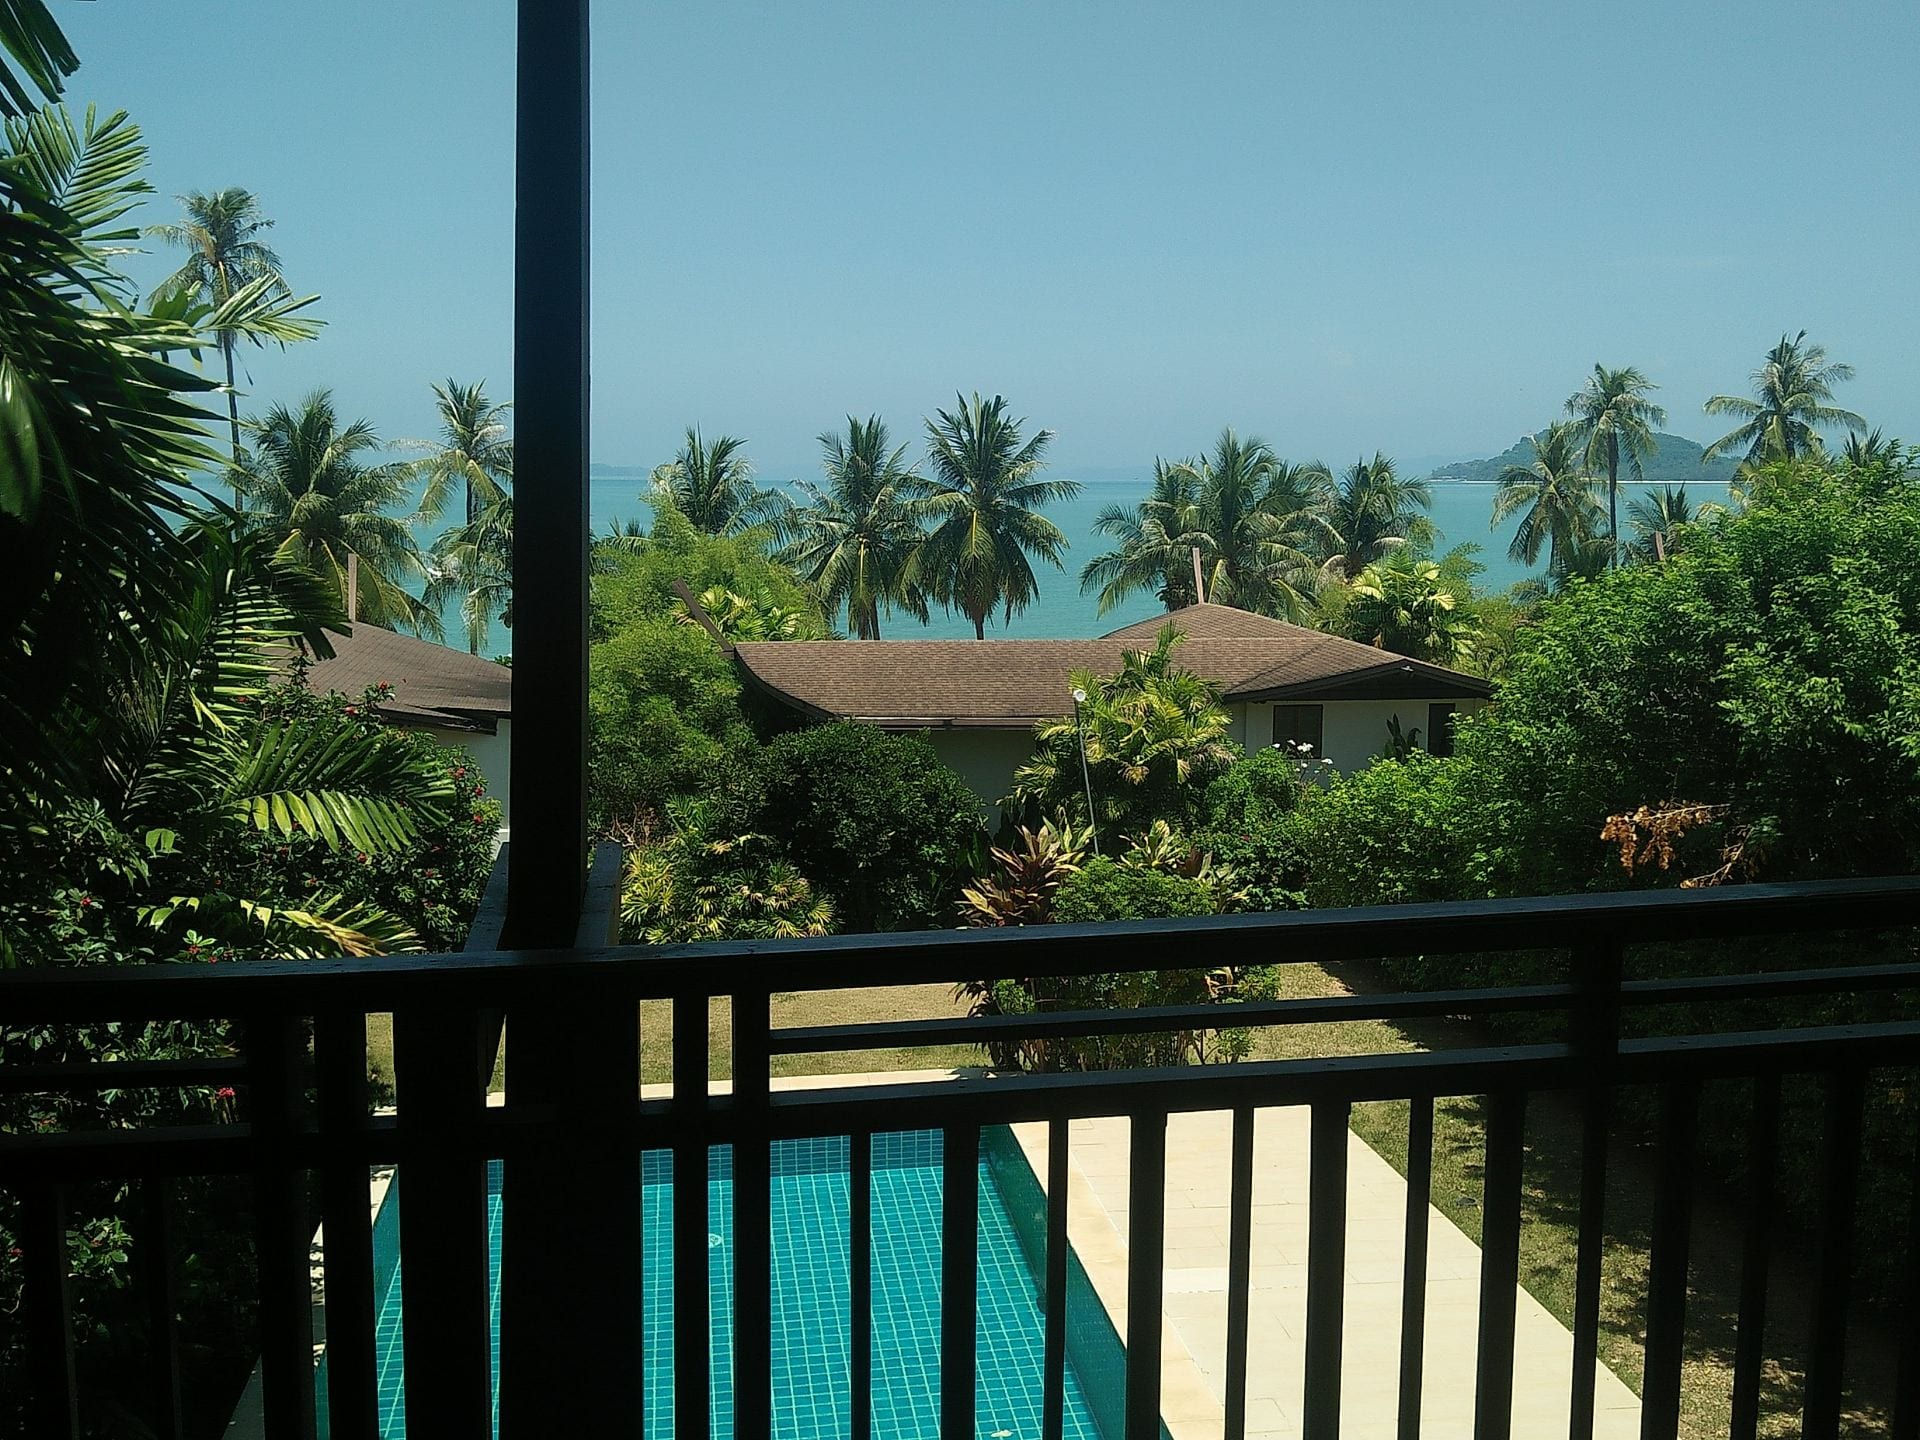 Sea View Villa, Coconut Island, Phuket V26, 2 Bed